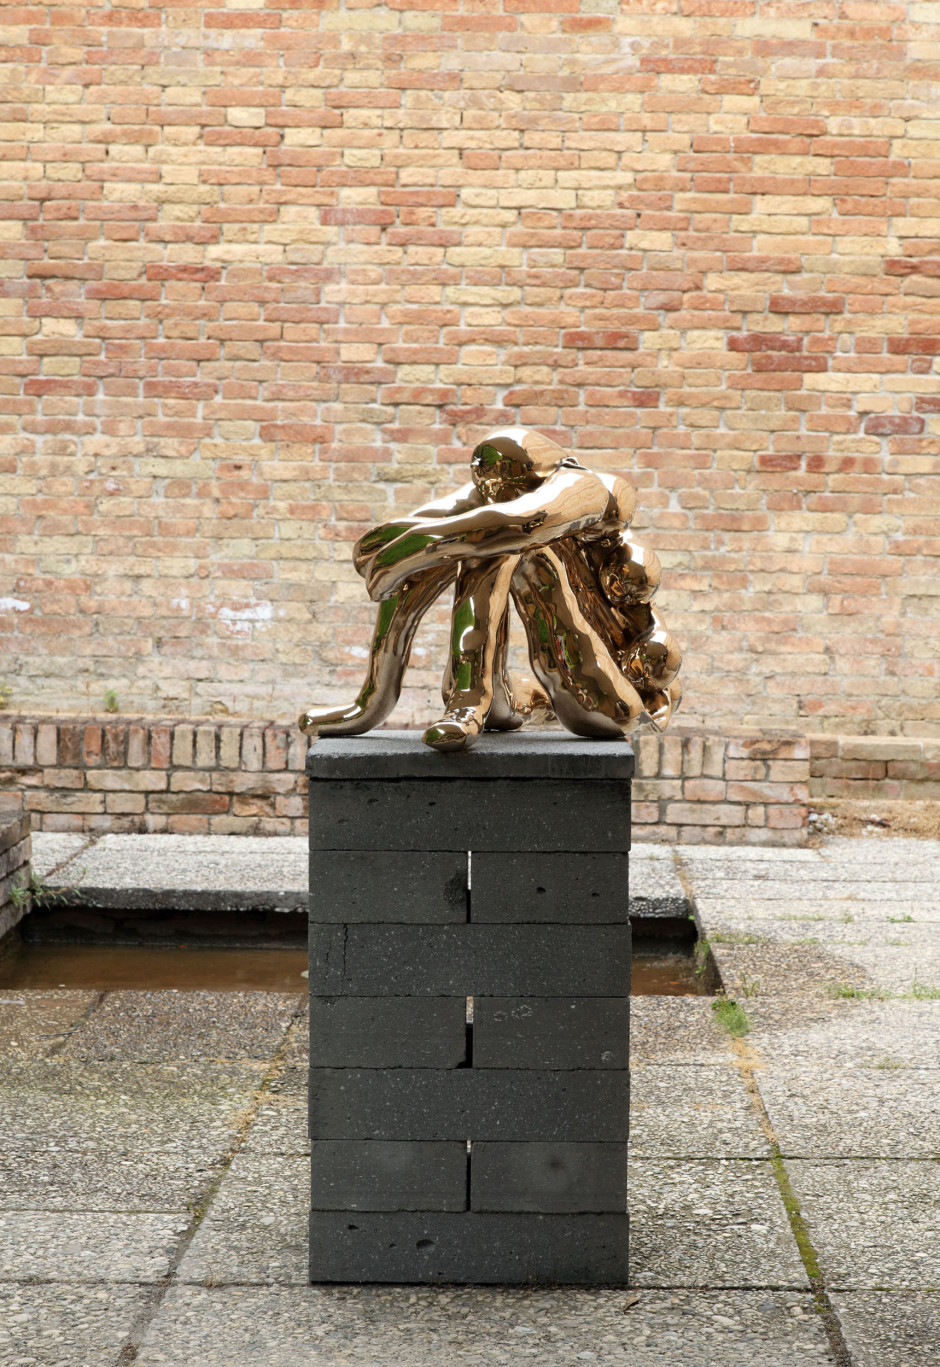 Realidad, 2013  stamped with engraved signature and editioned on base  cast bronze  44.0 x 43.0 x 57.0 cm 17 1/8 x 16 5/16 x 22 1/8 in.